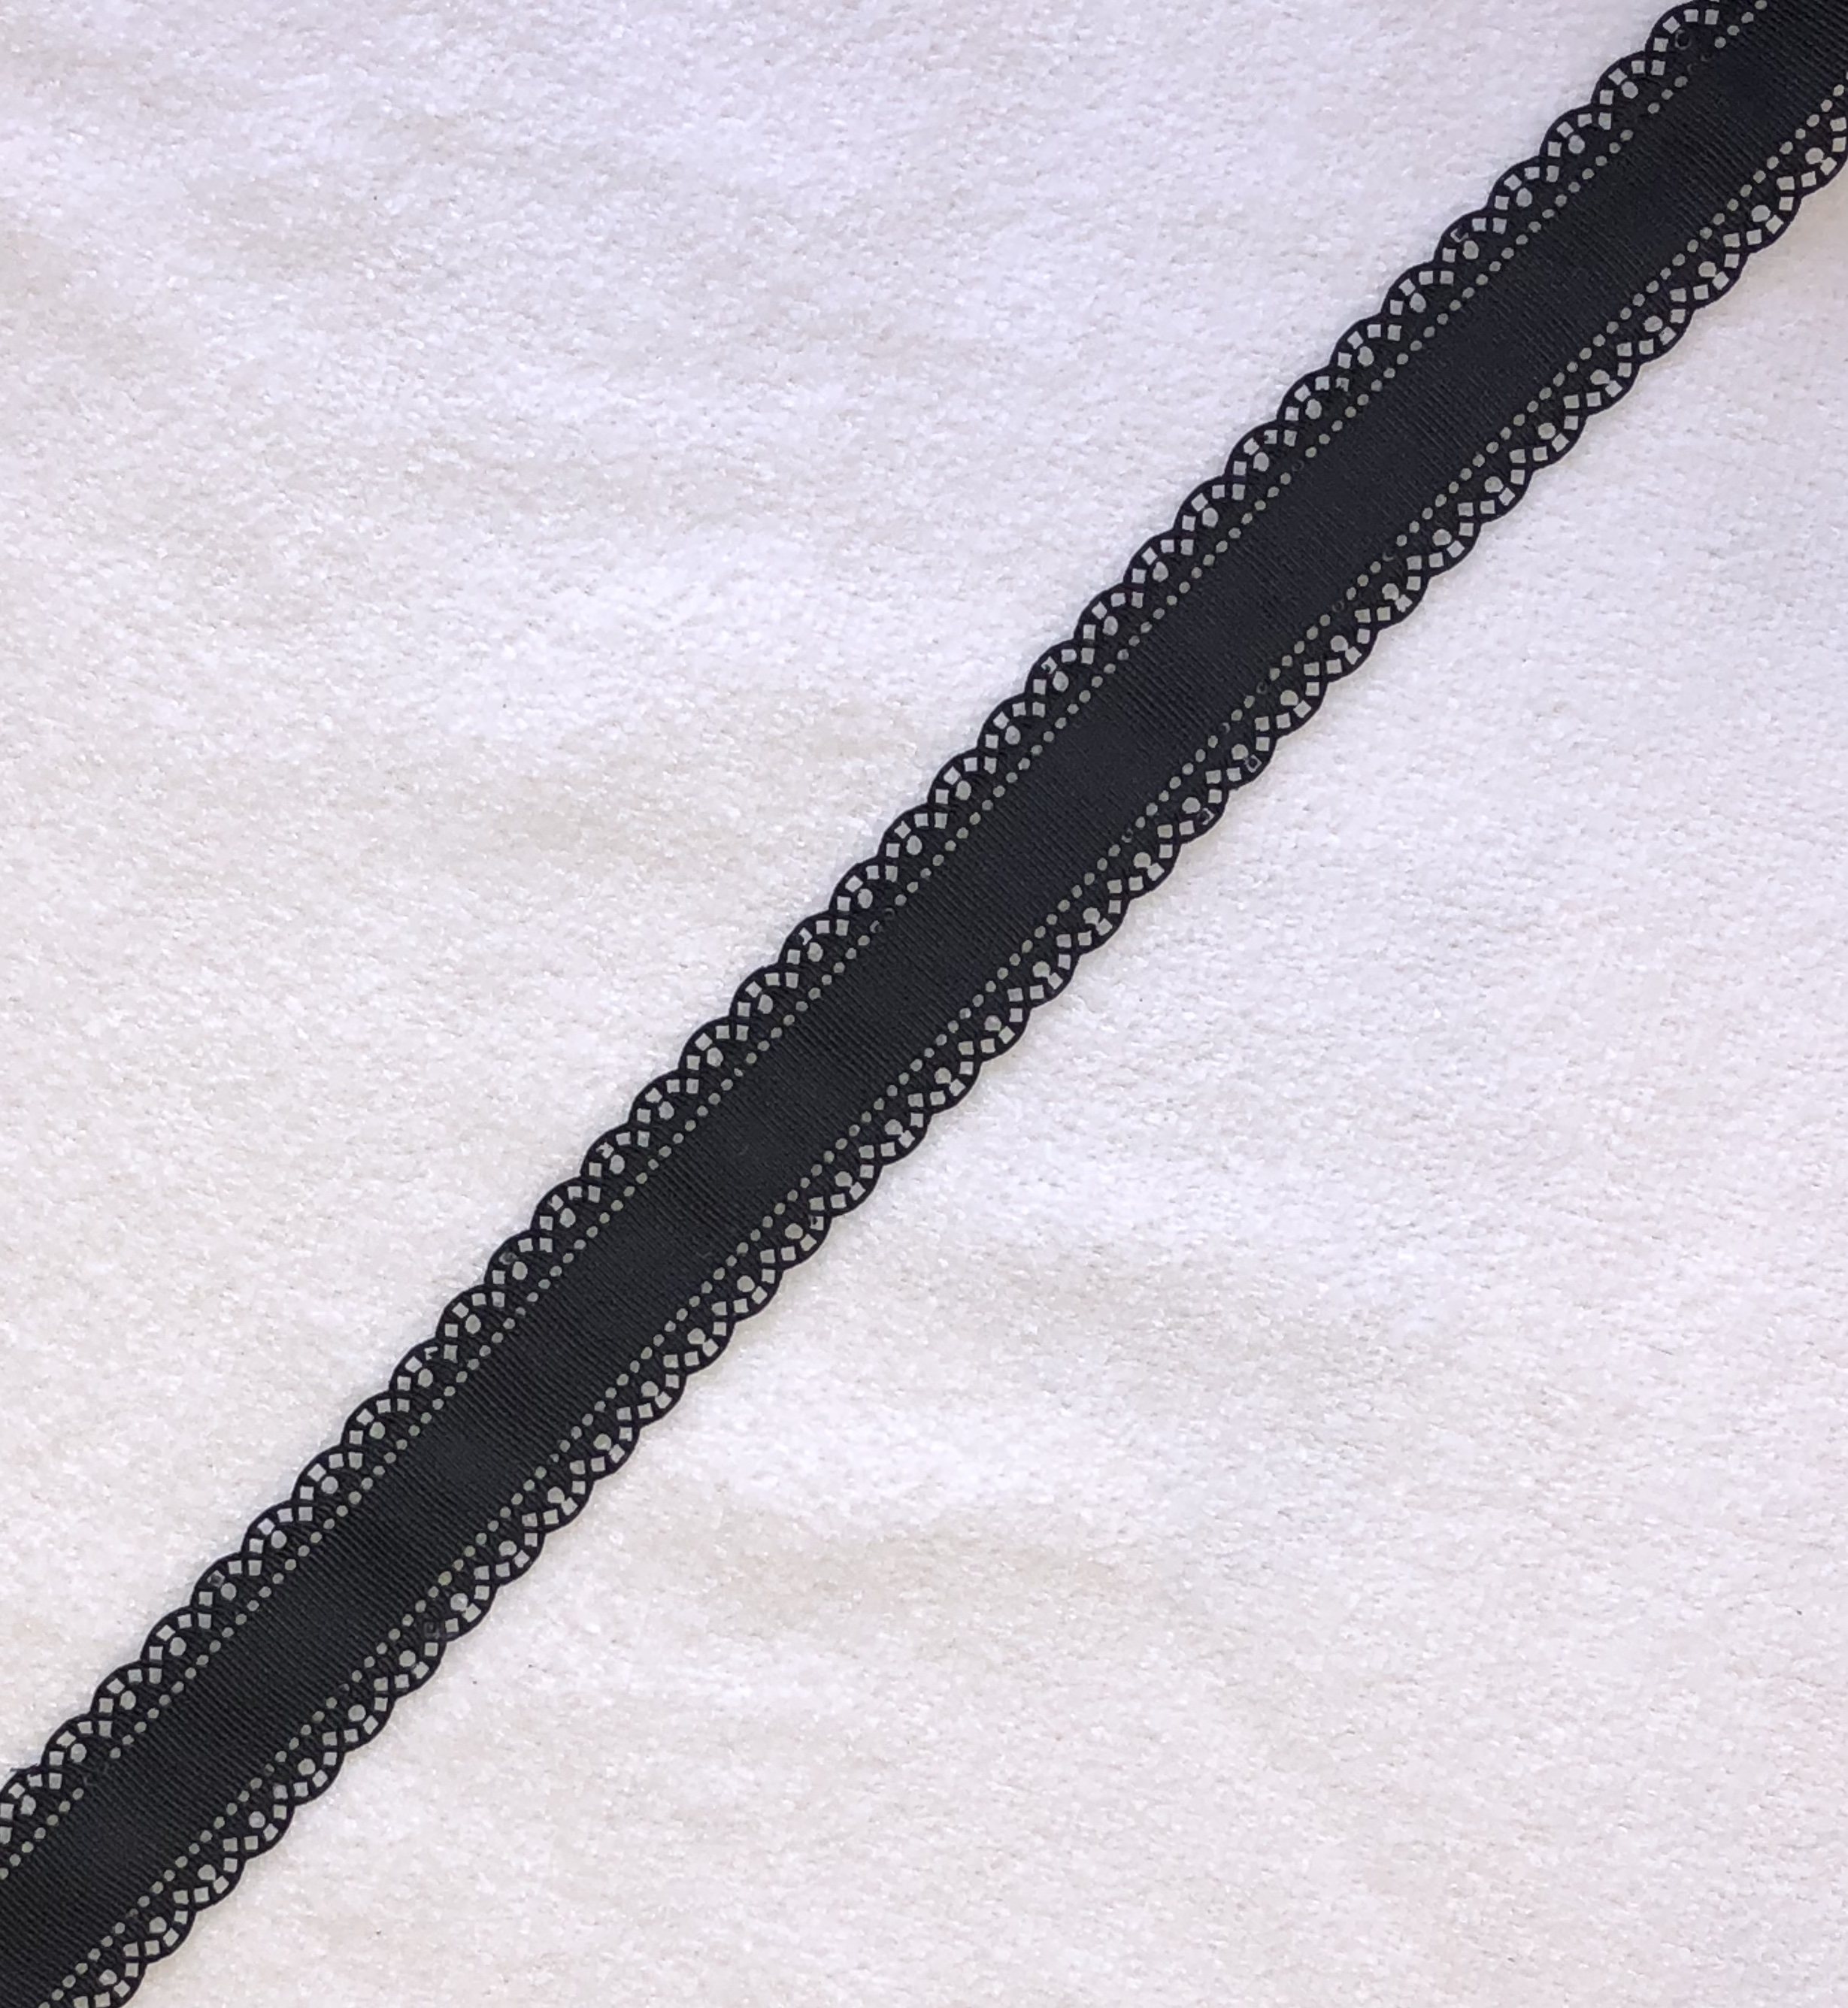 30mm Scallop Grosgrain Ribbon - Black x 1yd